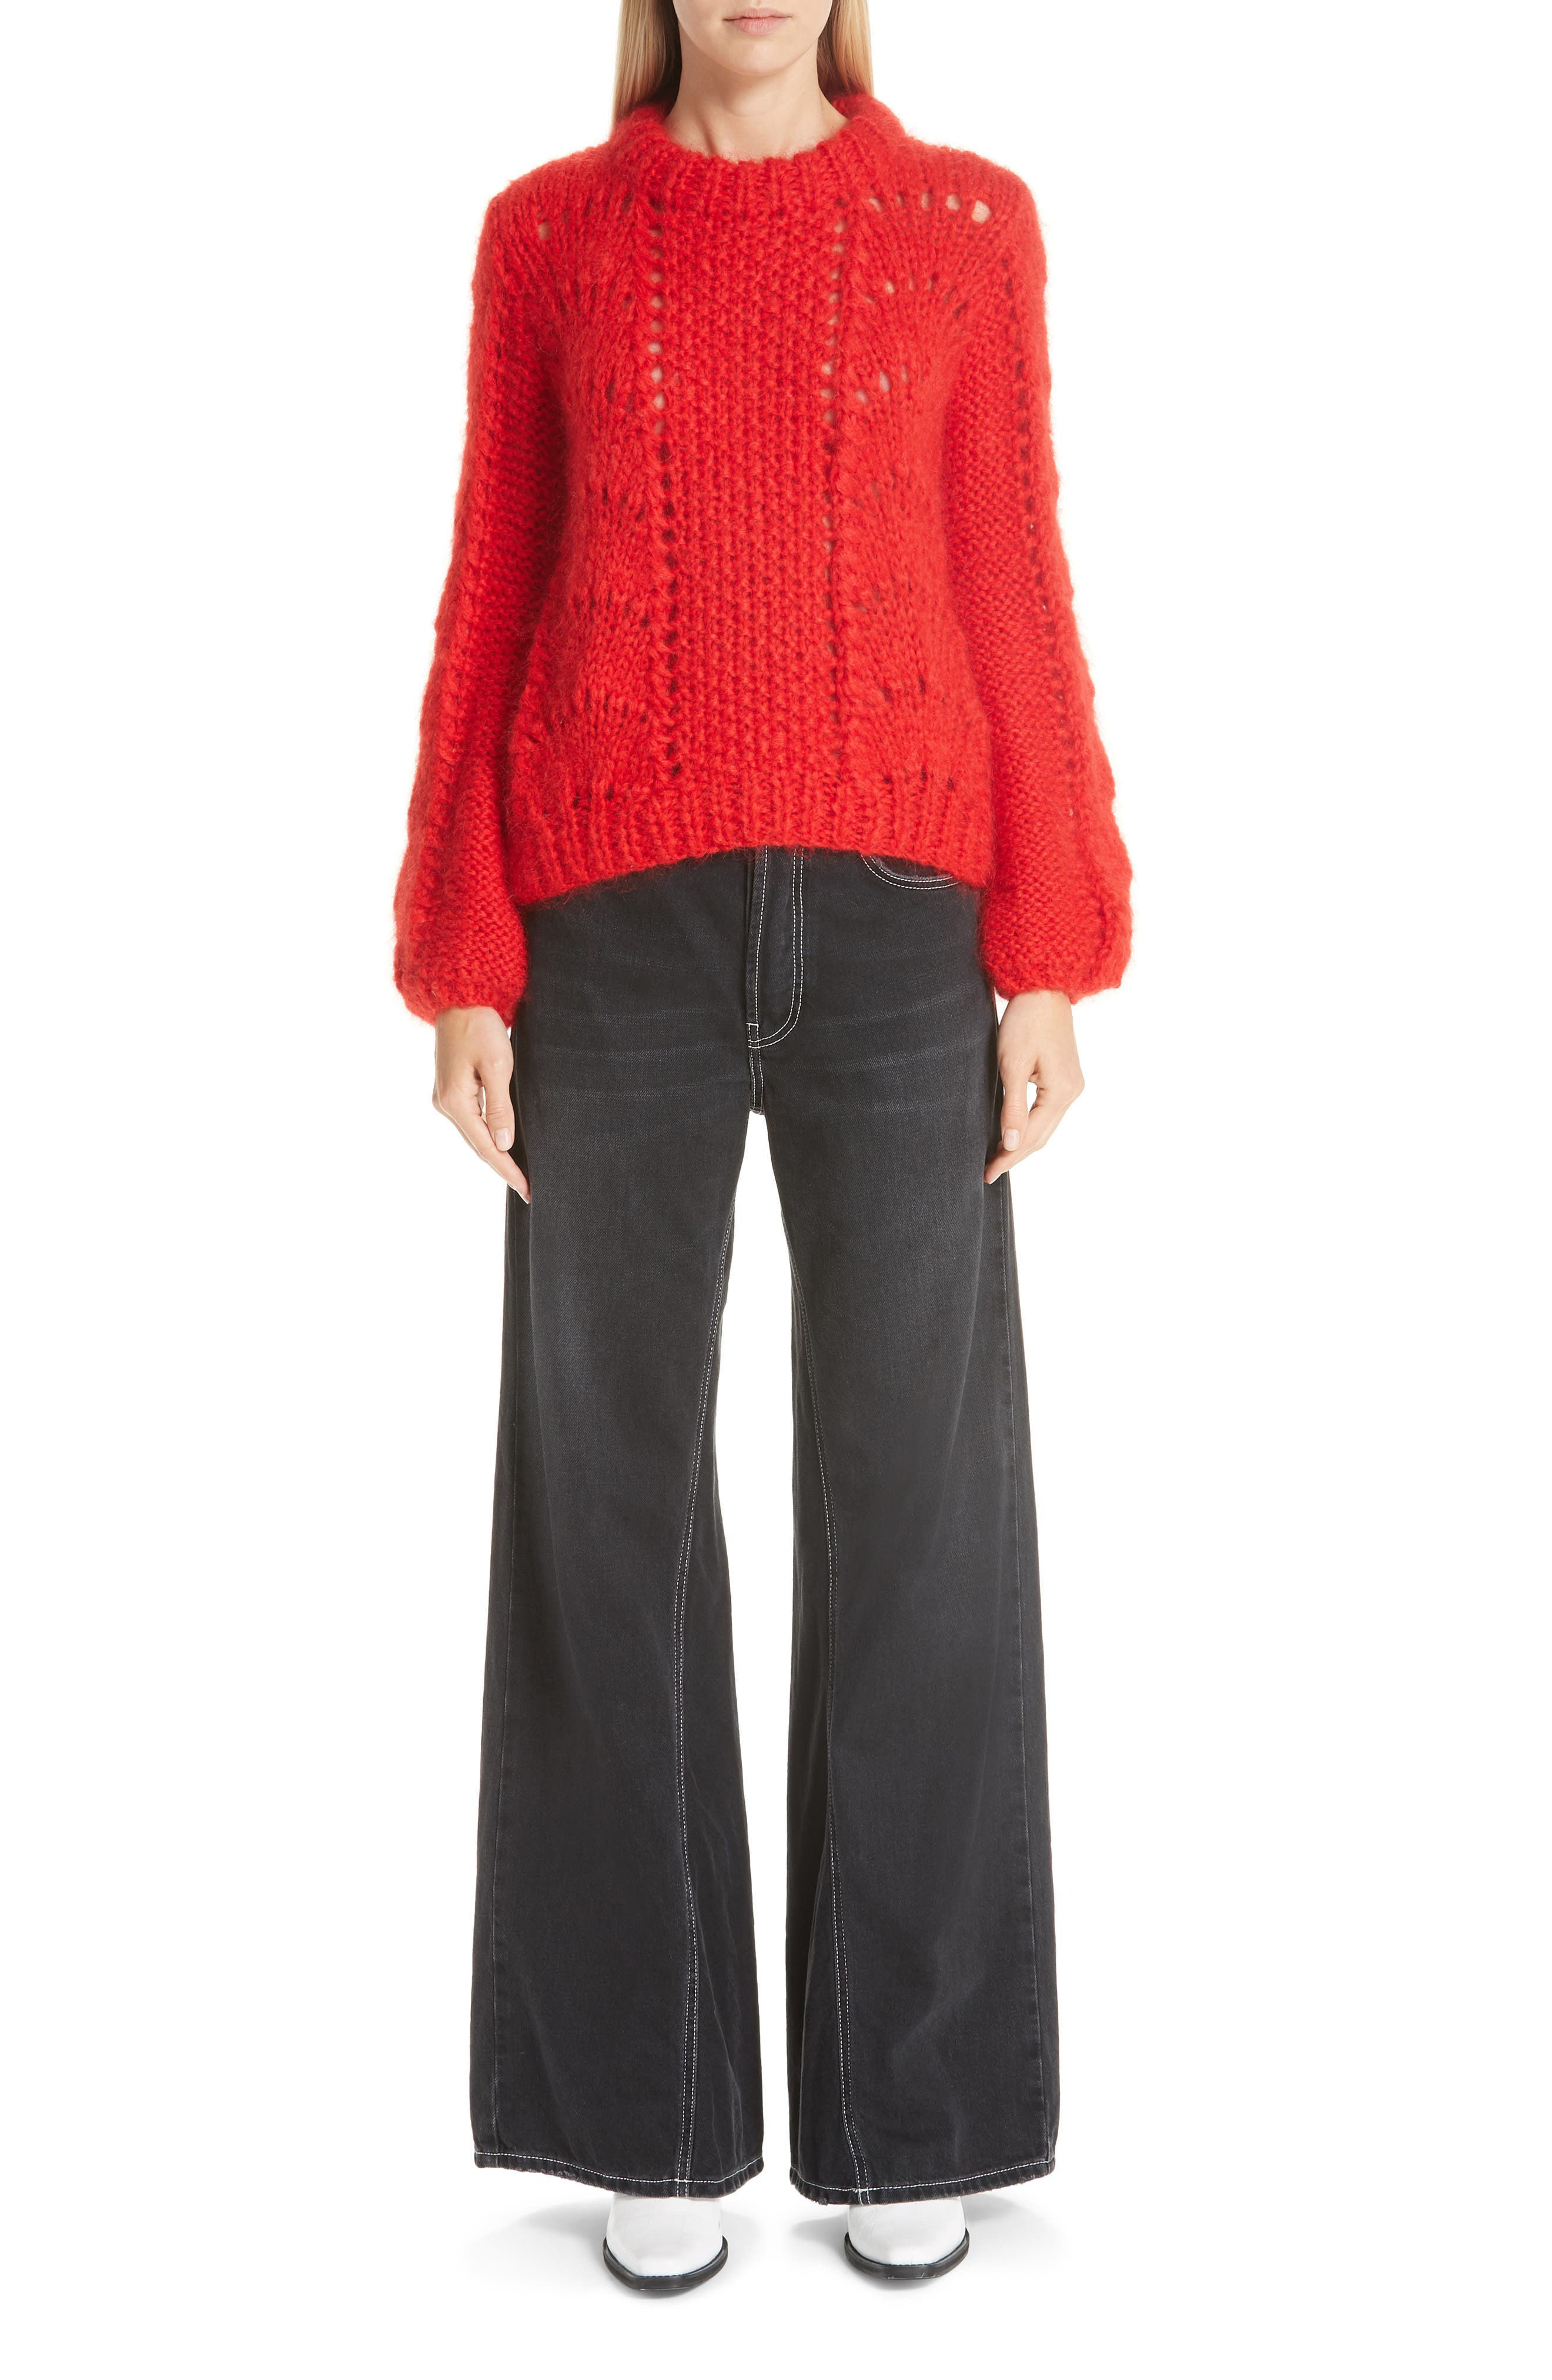 GANNI,                             Mohair & Wool Sweater,                             Alternate thumbnail 7, color,                             FIERY RED 403